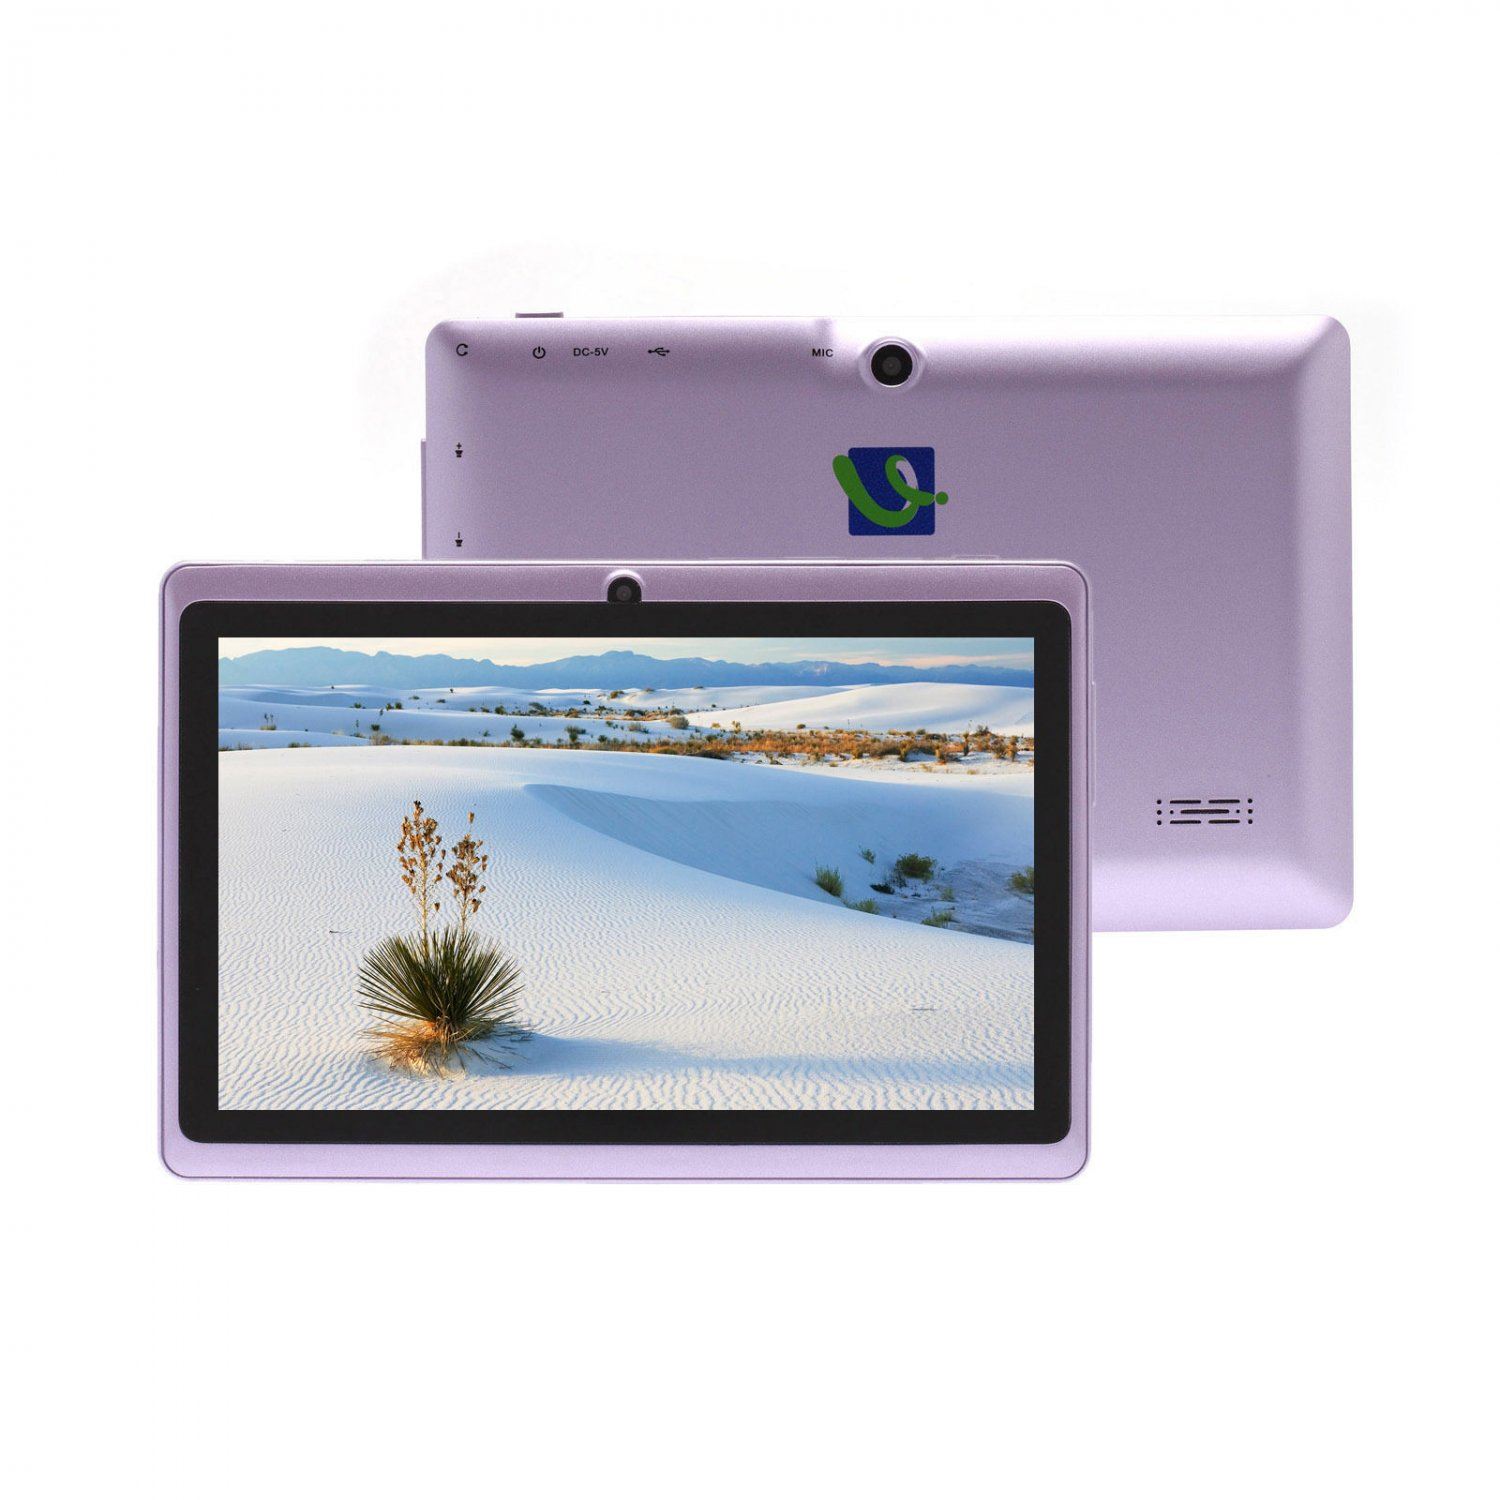 IRULU Tablet eXpro X1 7inch Violet Google Android 4.2 Dual Core 8GB WIFI wKeyboard